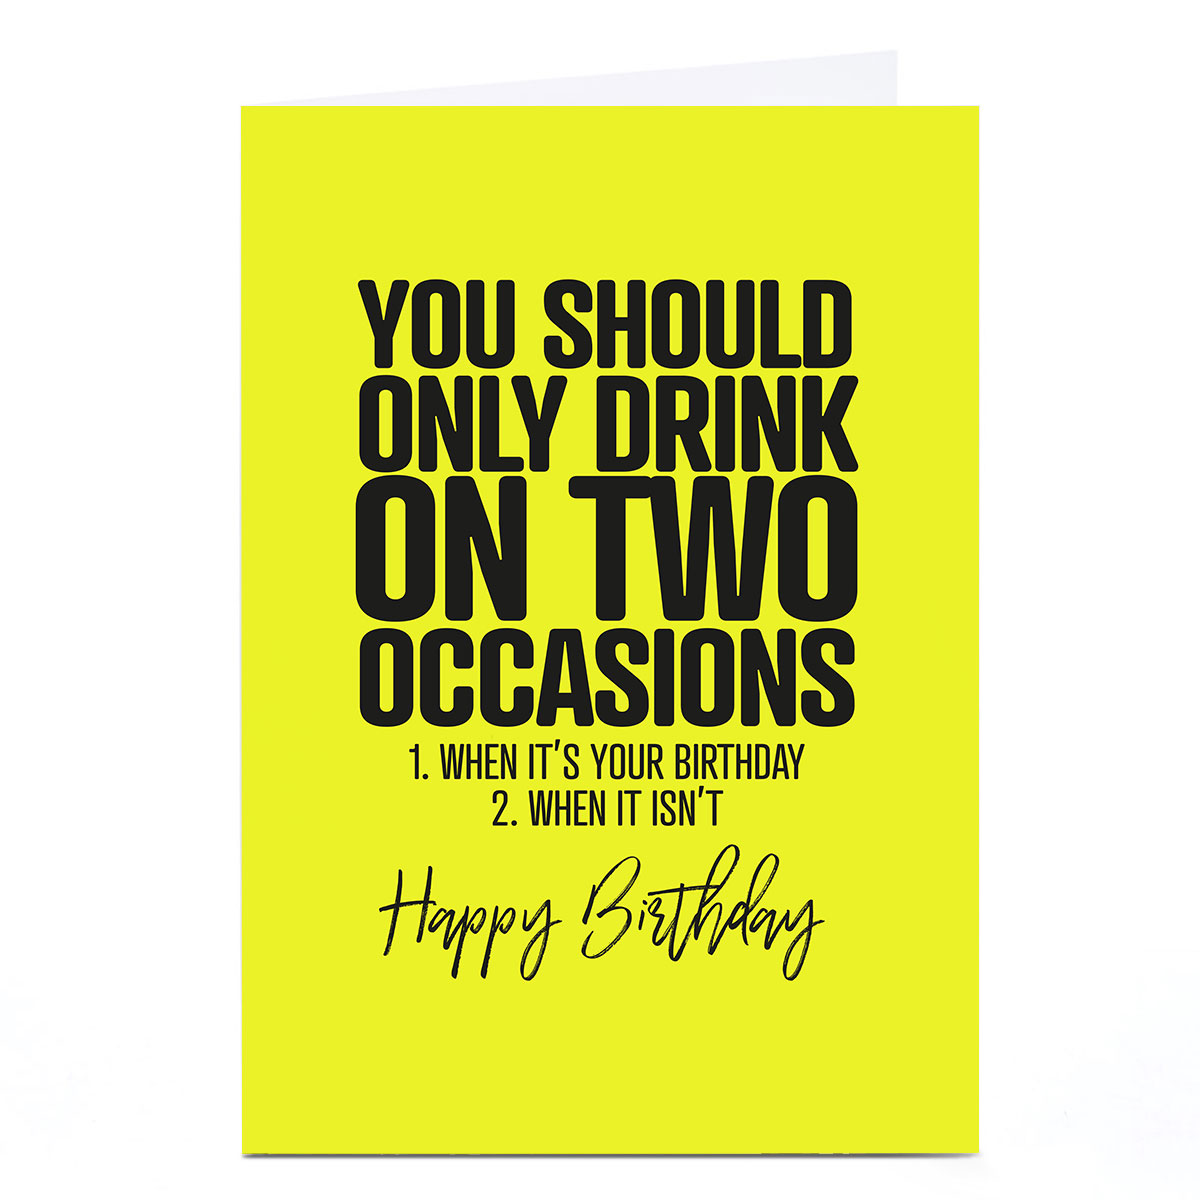 Personalised Punk Birthday Card - Drink On 2 Occasions